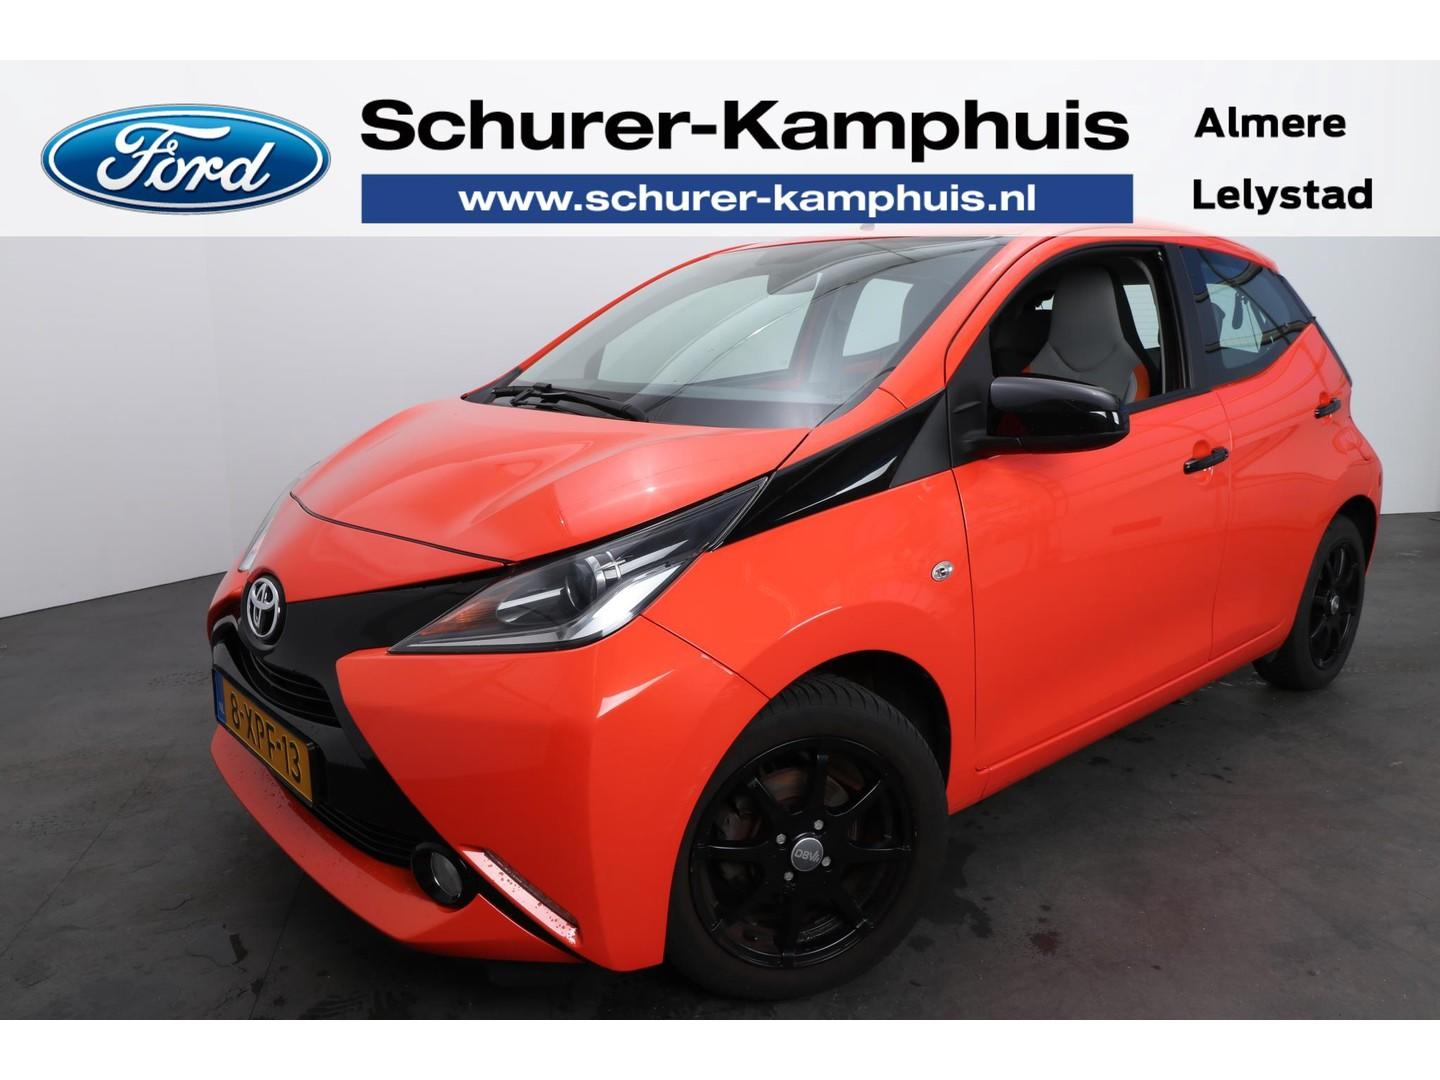 Toyota Aygo 1.0 vvt-i x-cite navigatie camera apple carplay/android auto lichtmetaal